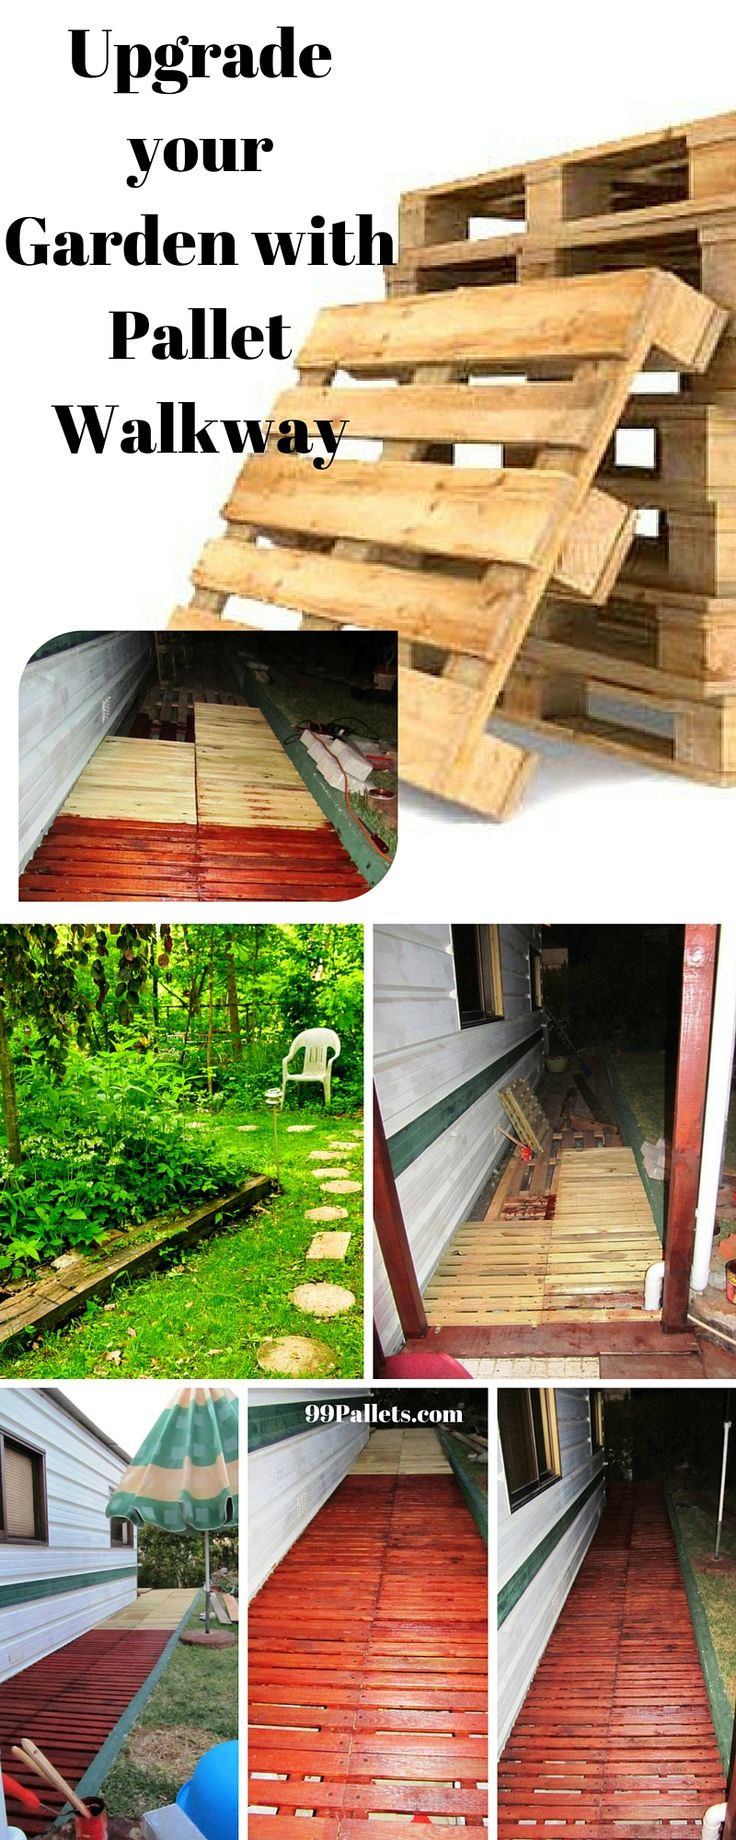 Pallet Walkway - Wooden Sidewalk Ideas - 99 Pallets